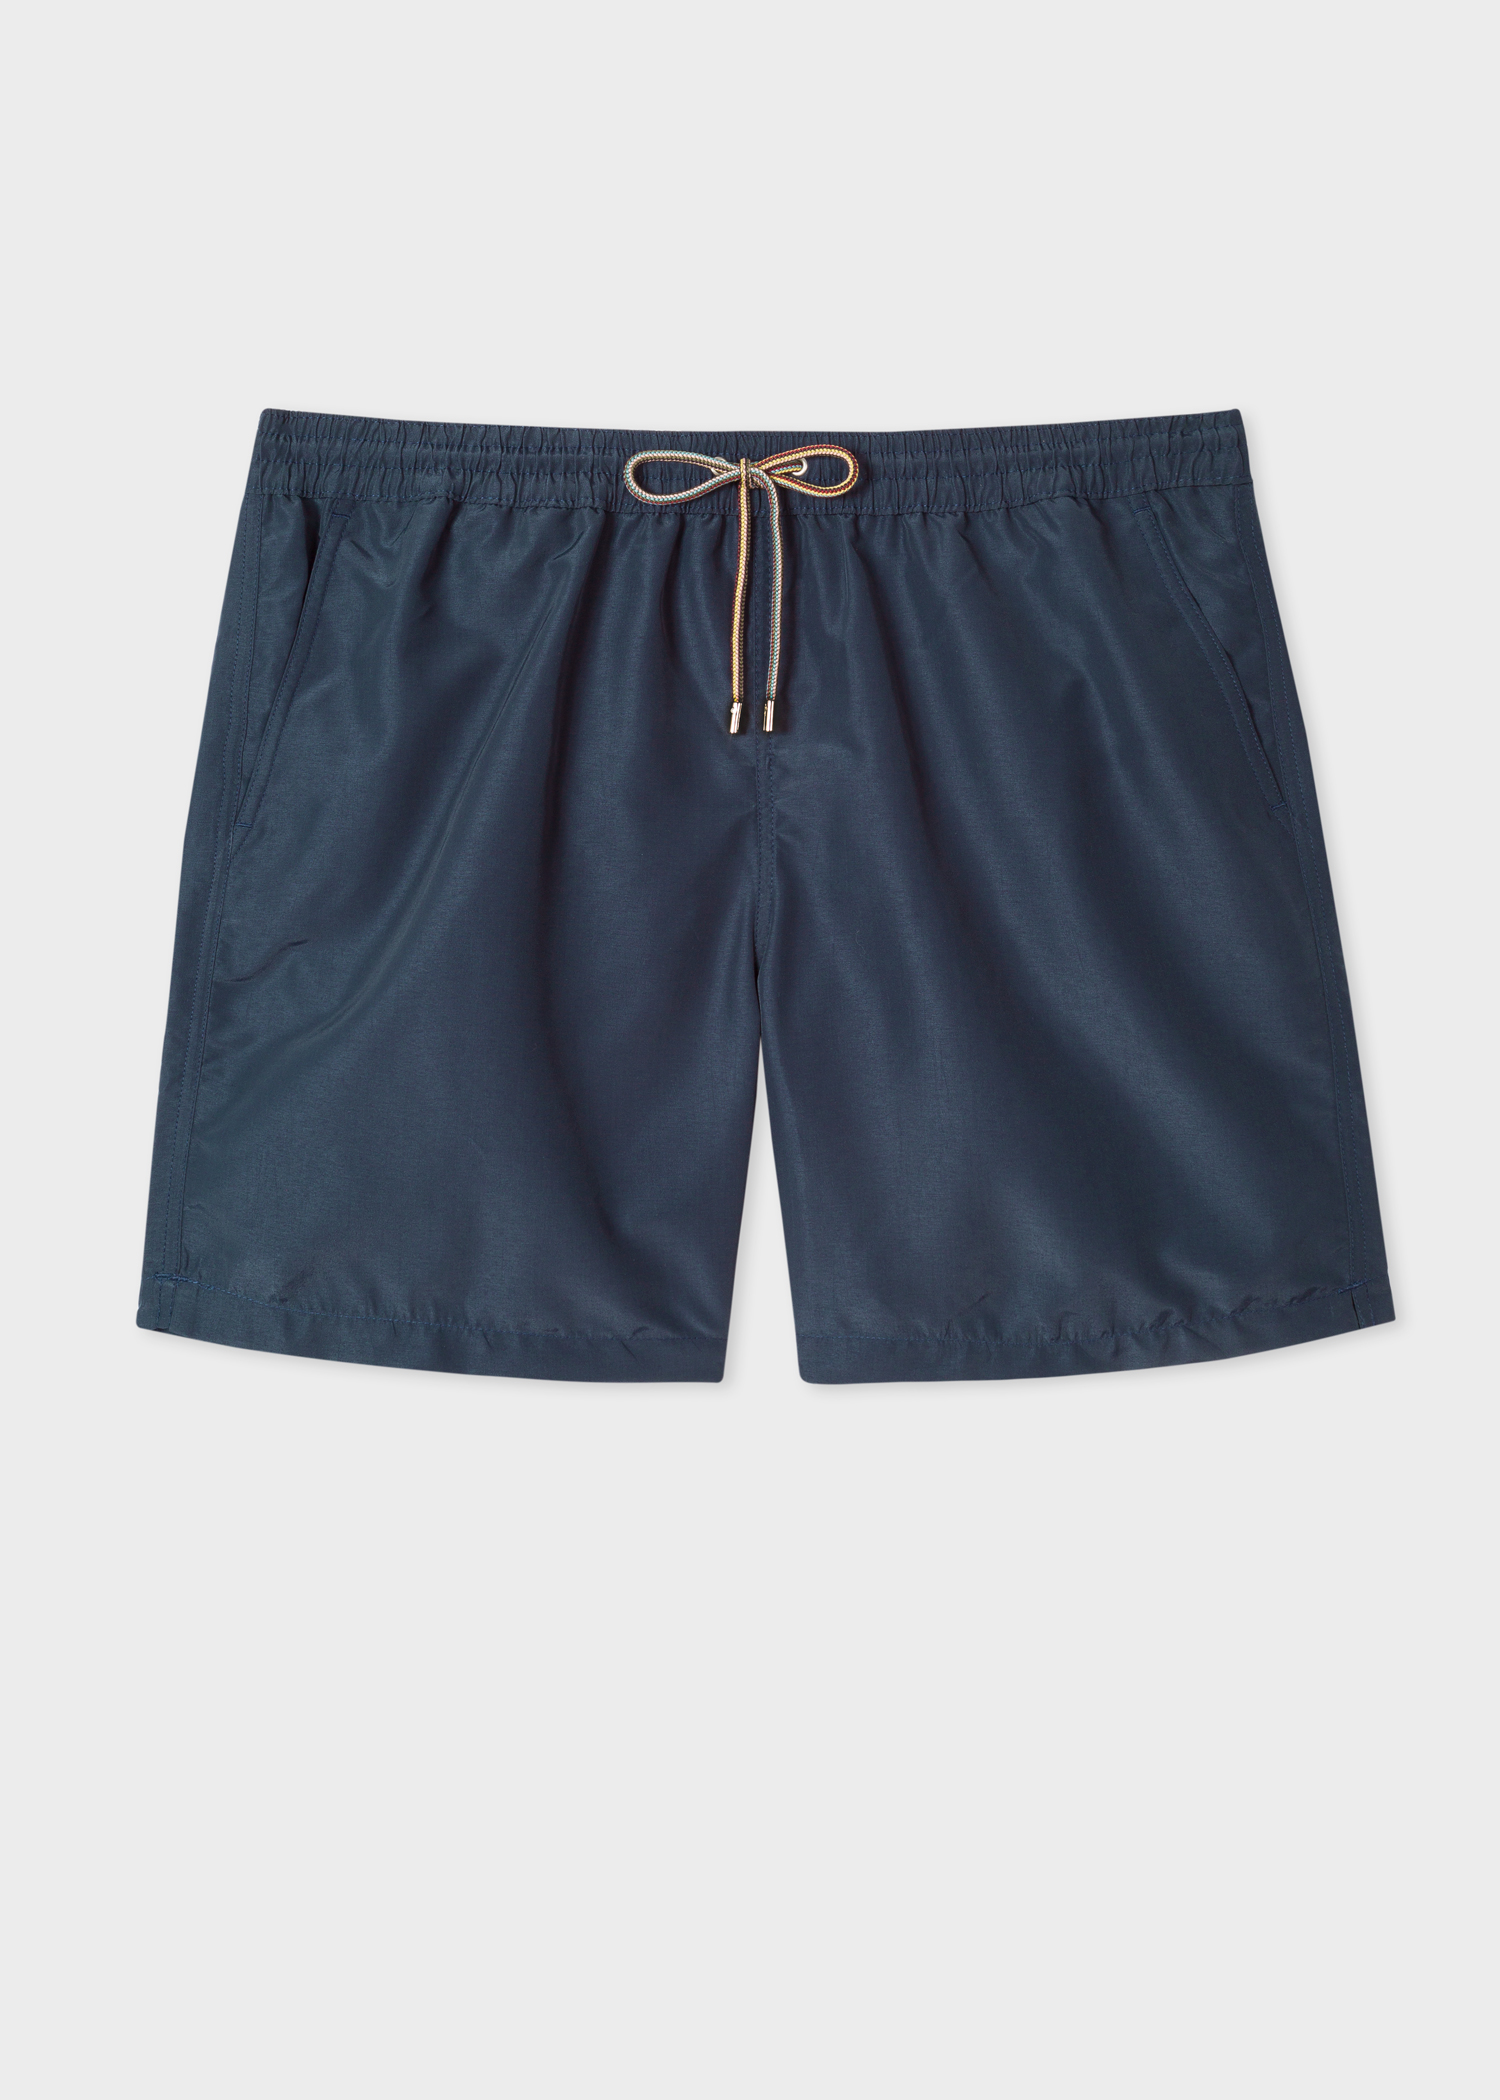 3260cab0e3 Front view - Men's Dark Navy Long Swim Shorts Paul Smith